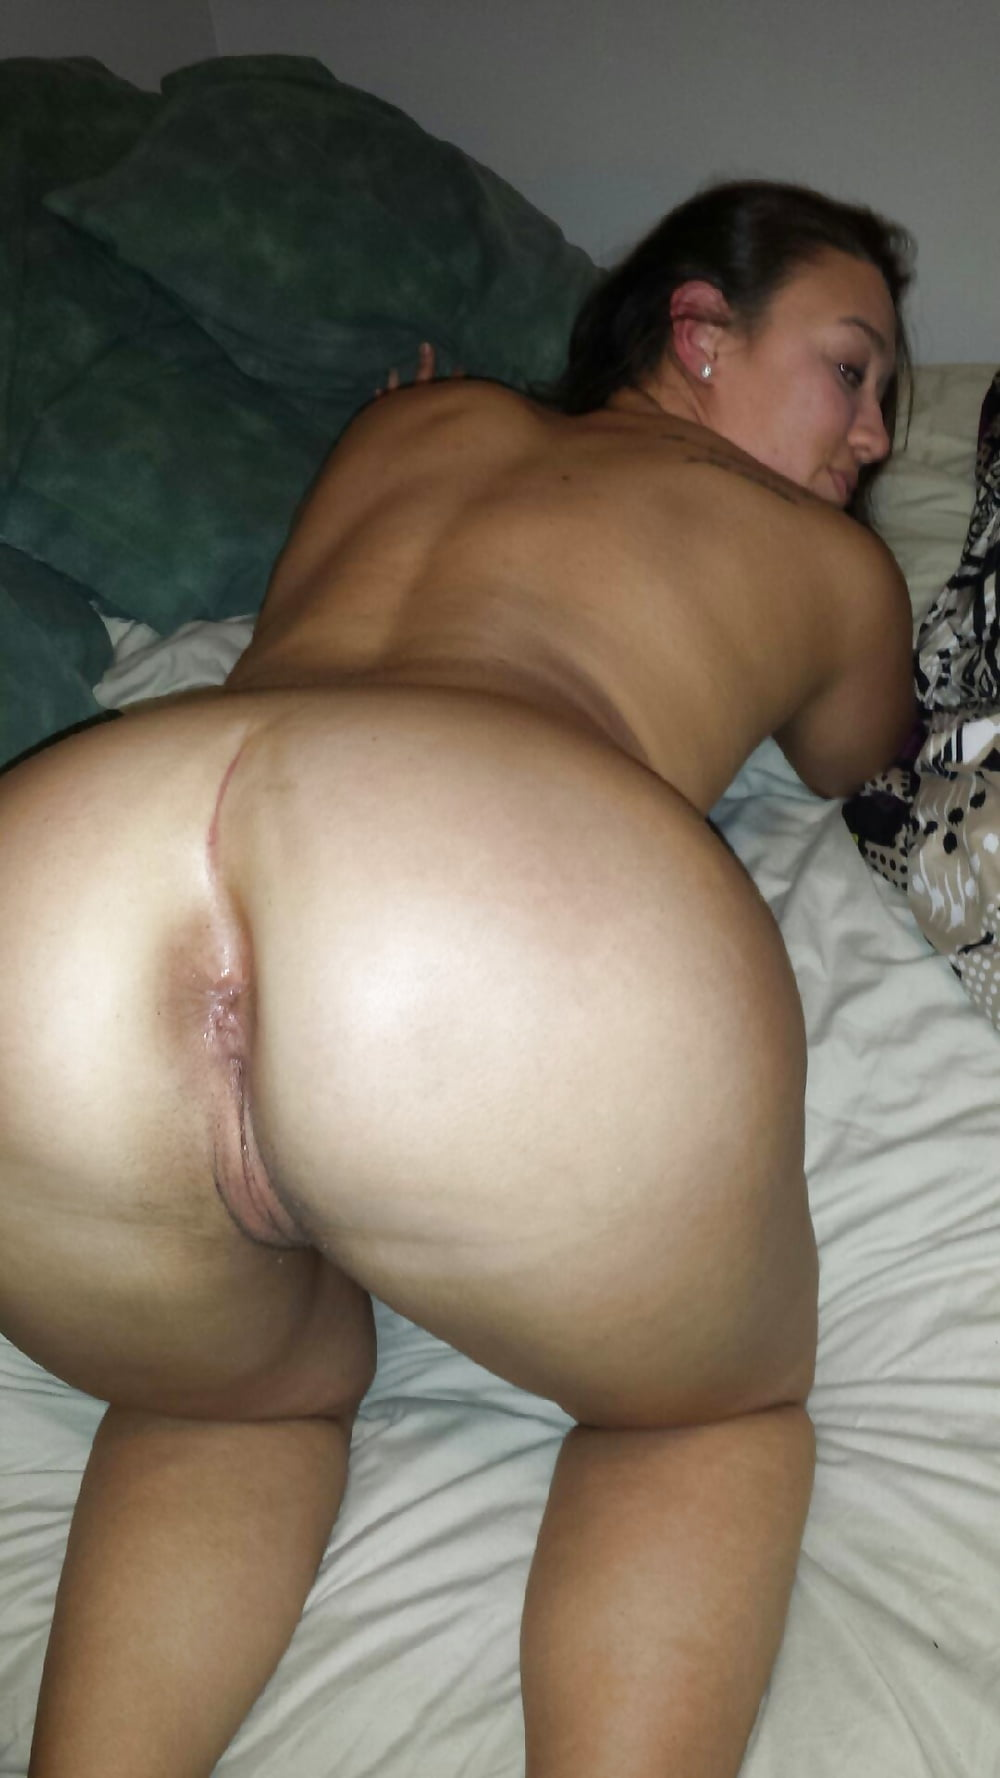 My Sister Let Me Fuck Her